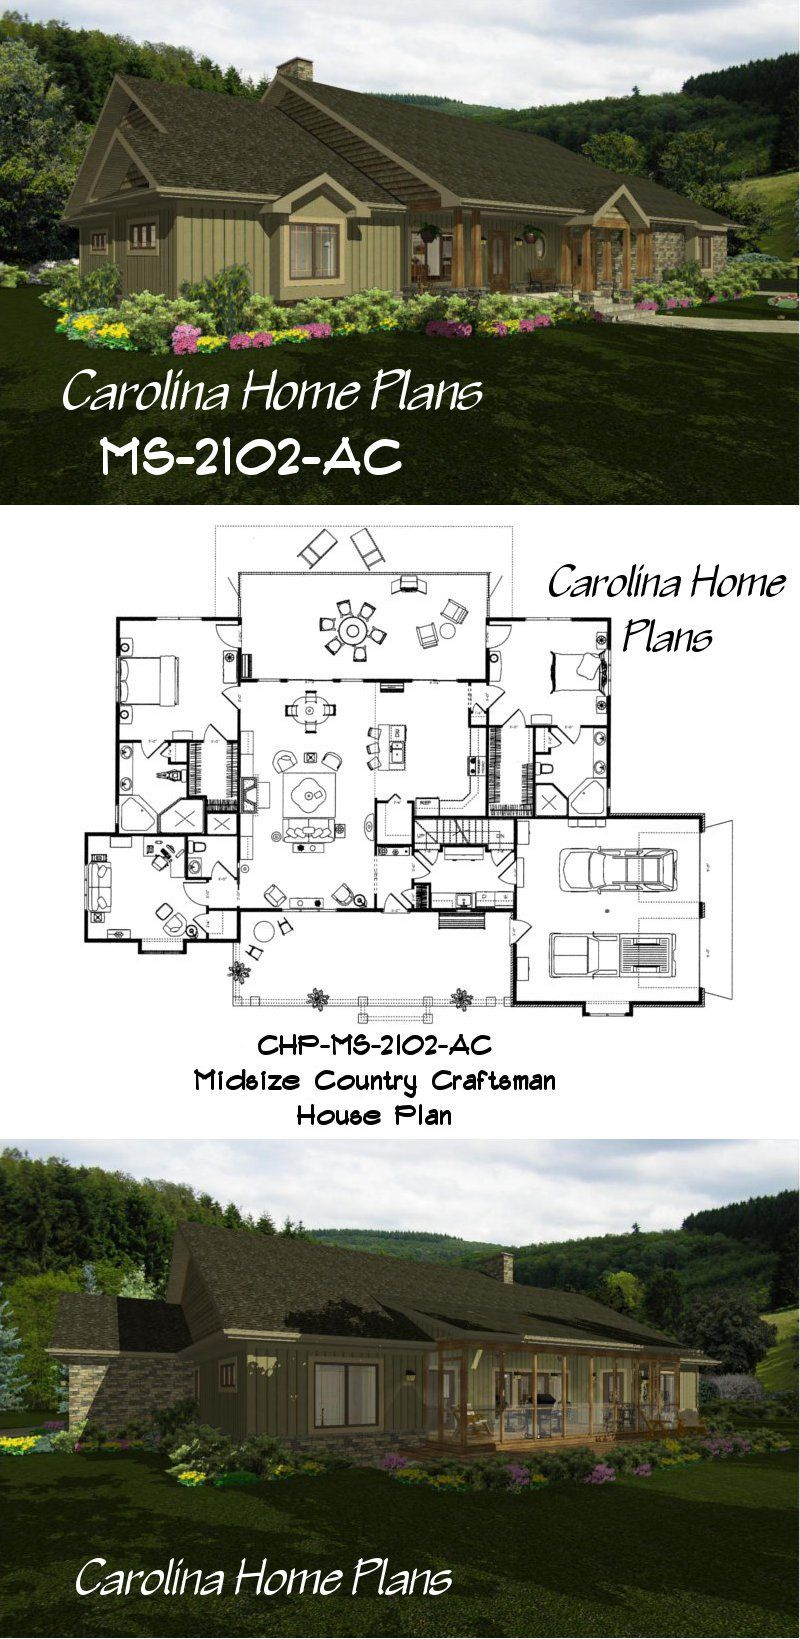 Choose your floor plans with the help of 3d views  Carolina Home     Choose your floor plans with the help of 3d views  Carolina Home Plans has  3d